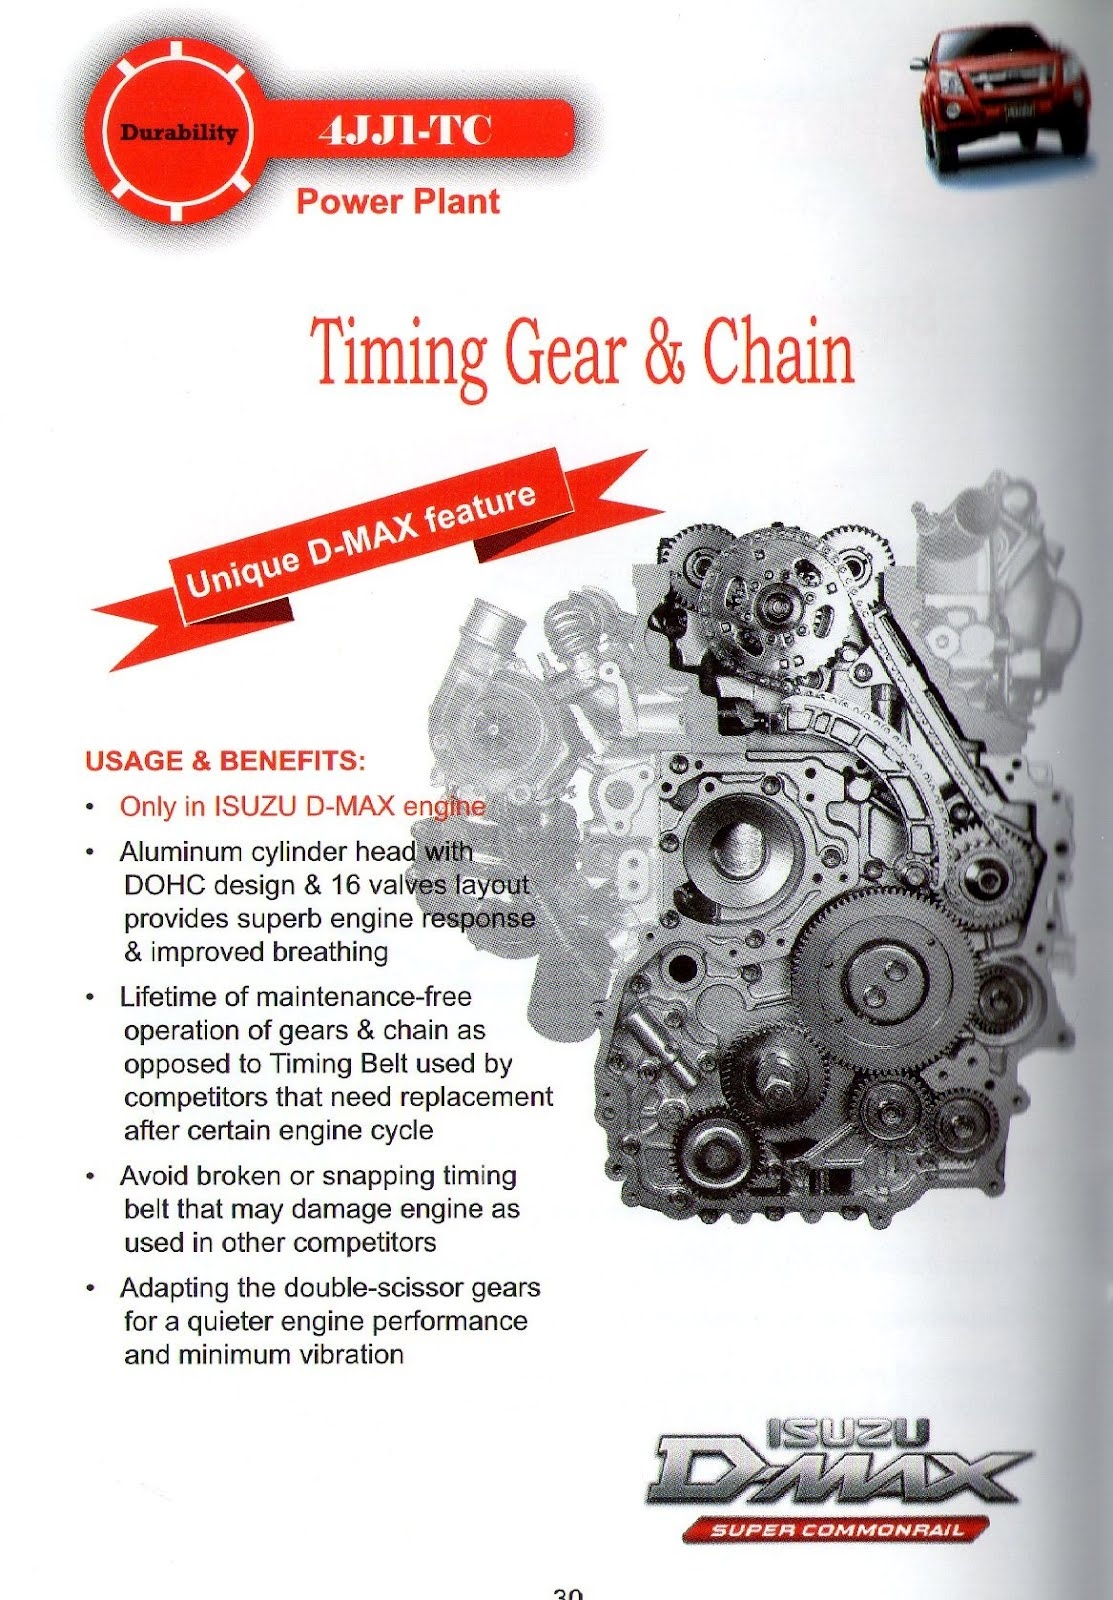 hight resolution of dmax engine using timing chain dan gear not belt reduce cost of